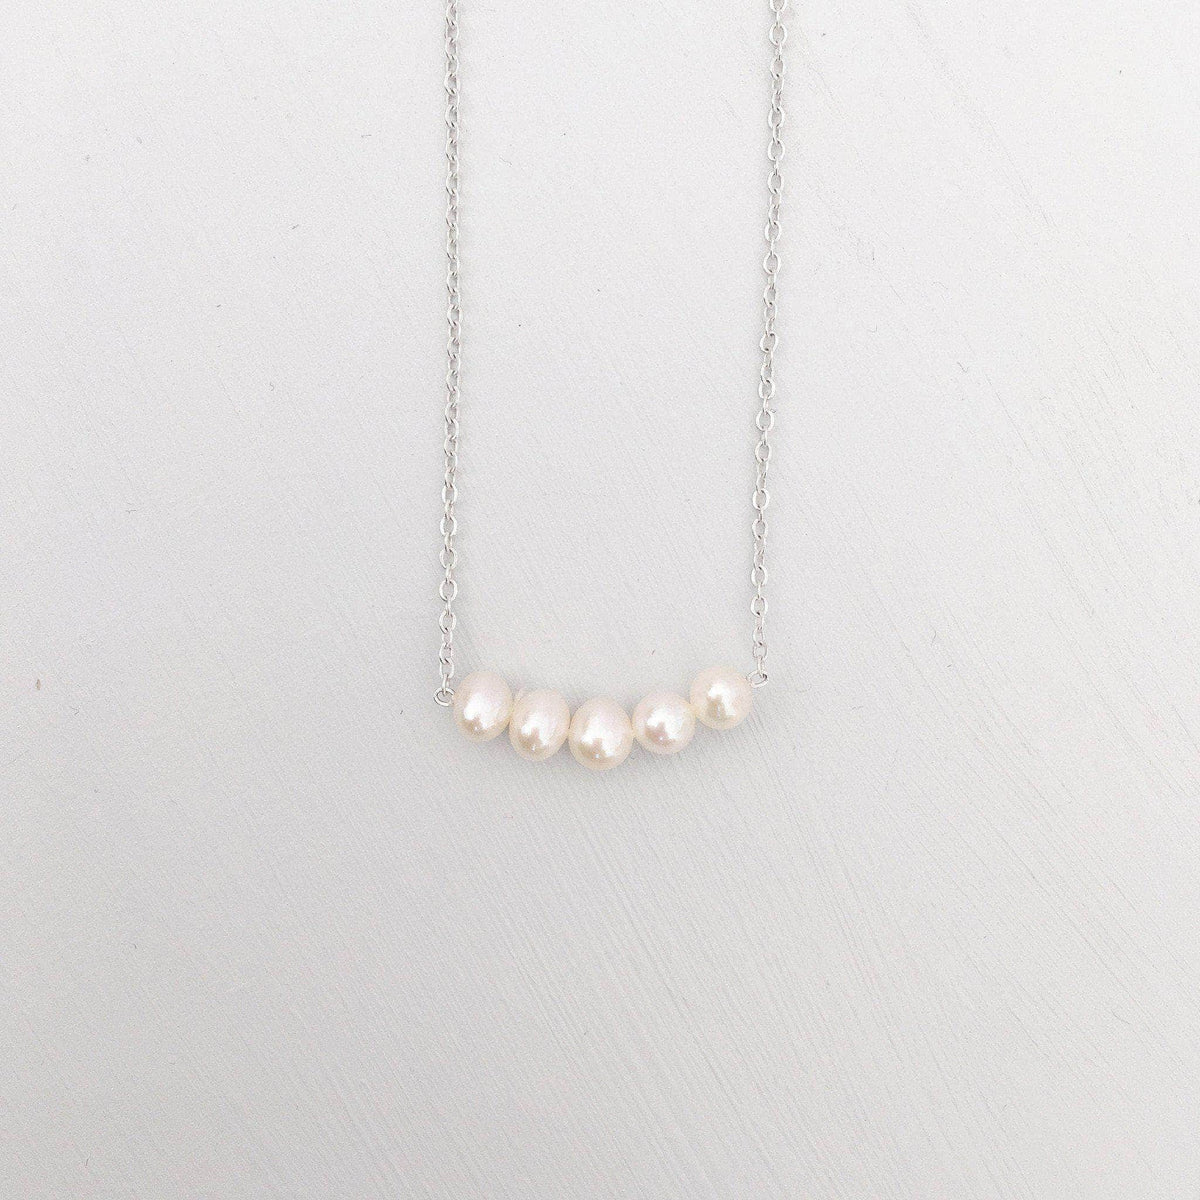 Wedding Necklace Silver Freshwater pearl wedding necklace - 'Aubrey'